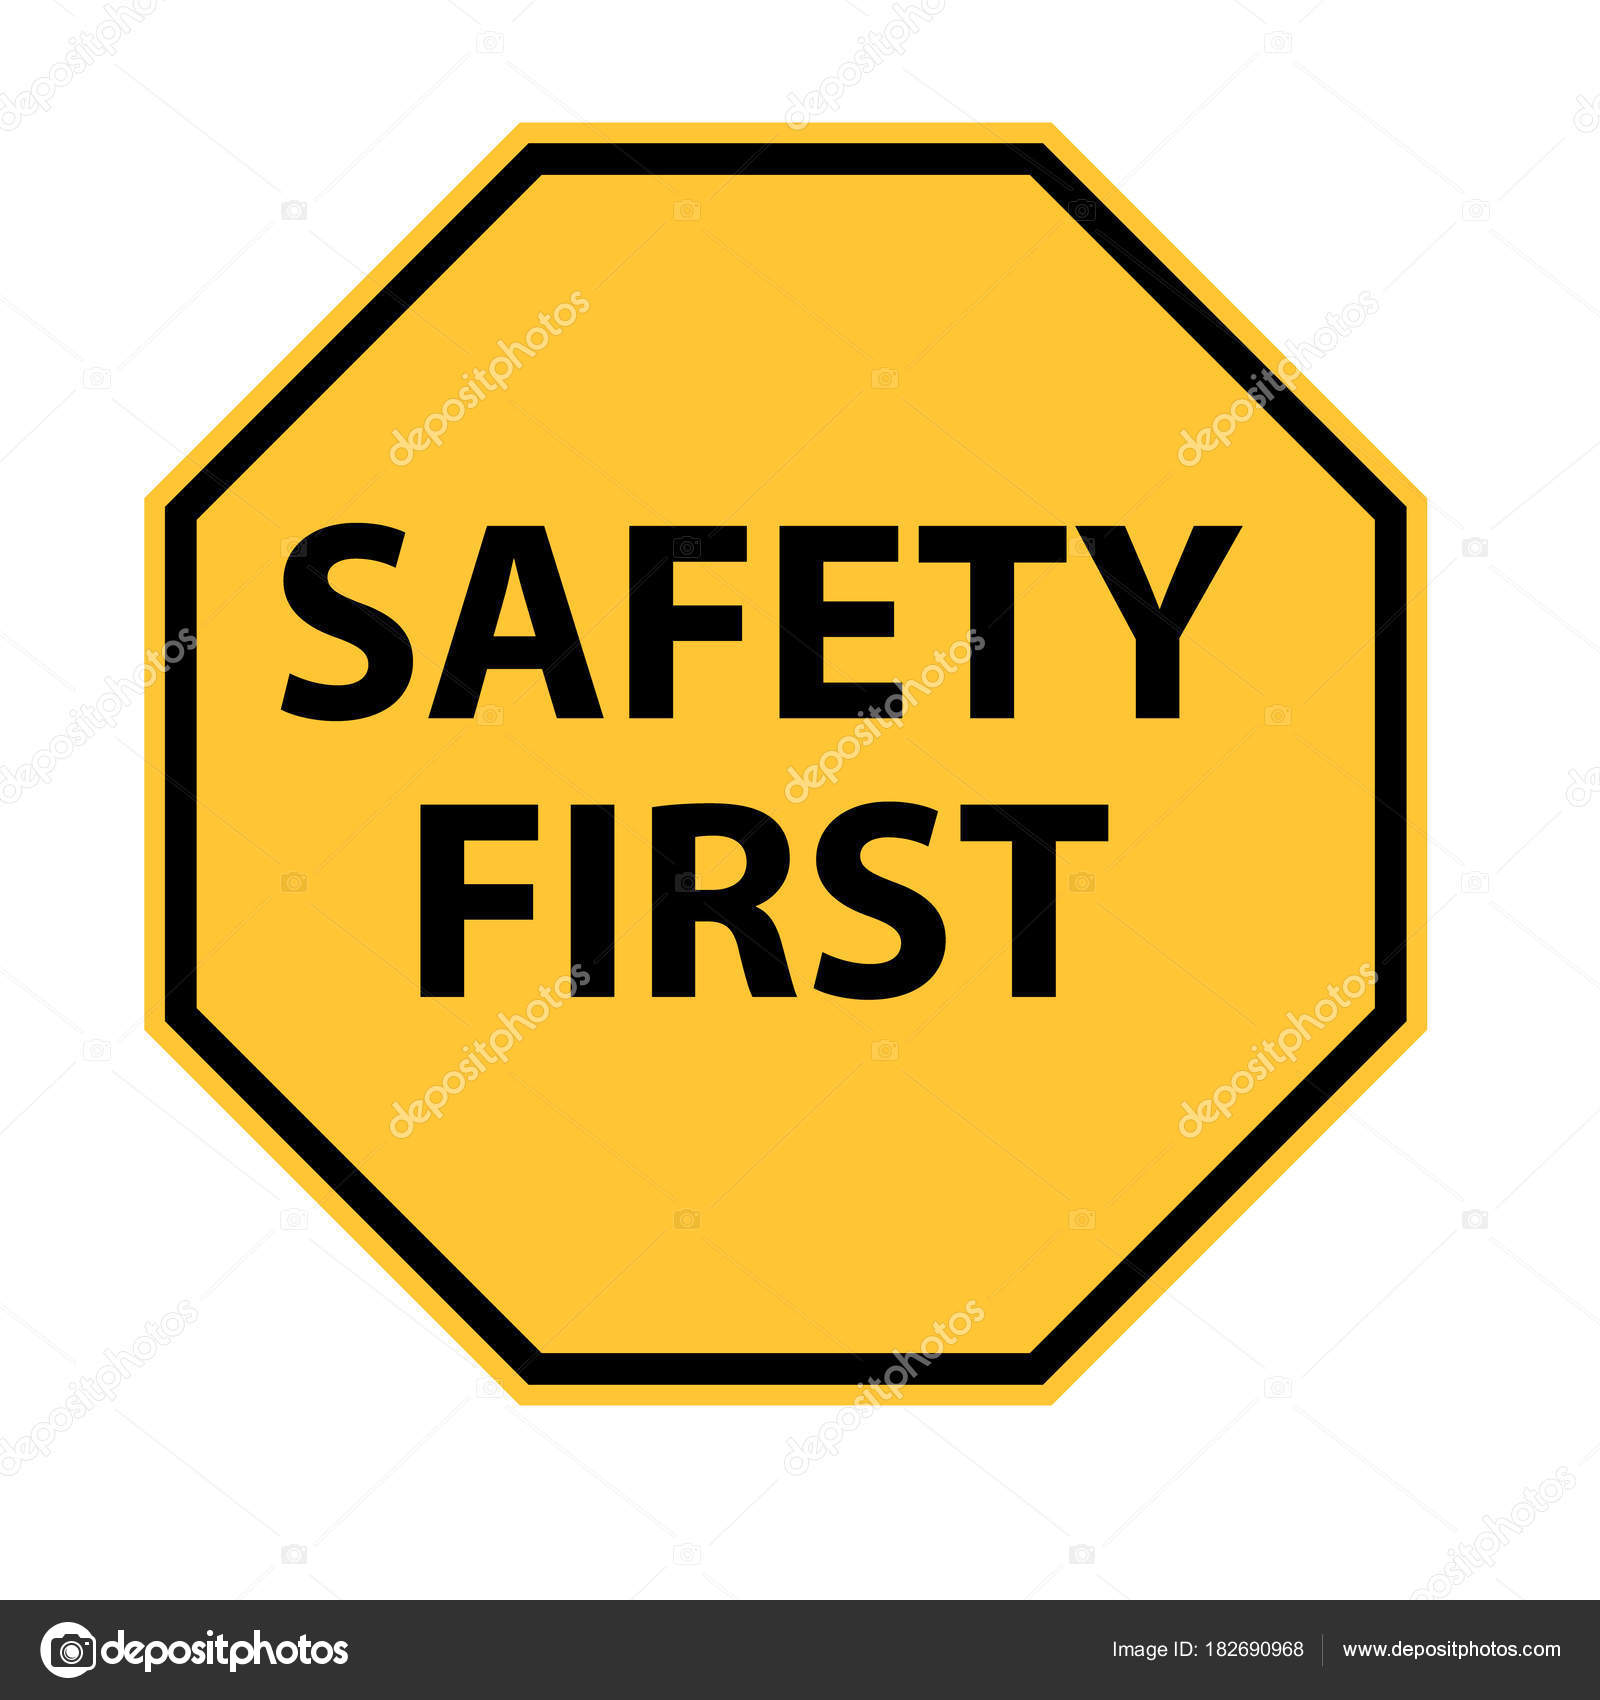 Safety first logo on white background safety first symbol safe safety first logo on white background safety first symbol safe stock vector biocorpaavc Choice Image